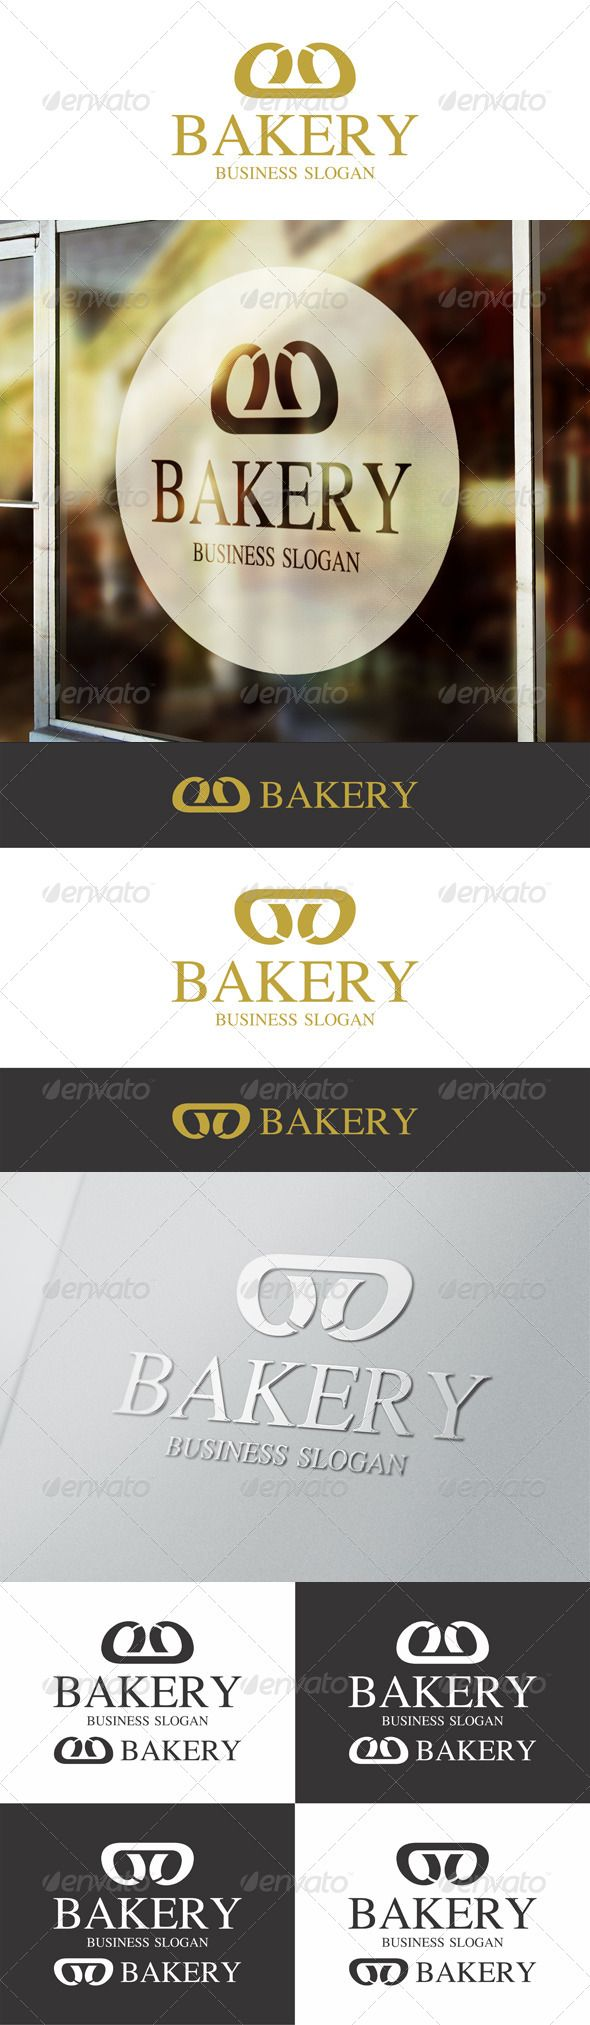 Bakery Bread Logo Template – perfect for bakery, baking, cooking or pastry services in an elegant and modern style. Croissant symbol. Letter B logo. Simple. Modern. Strong. Included horizontal and vertical versions. File is easy to customizable.